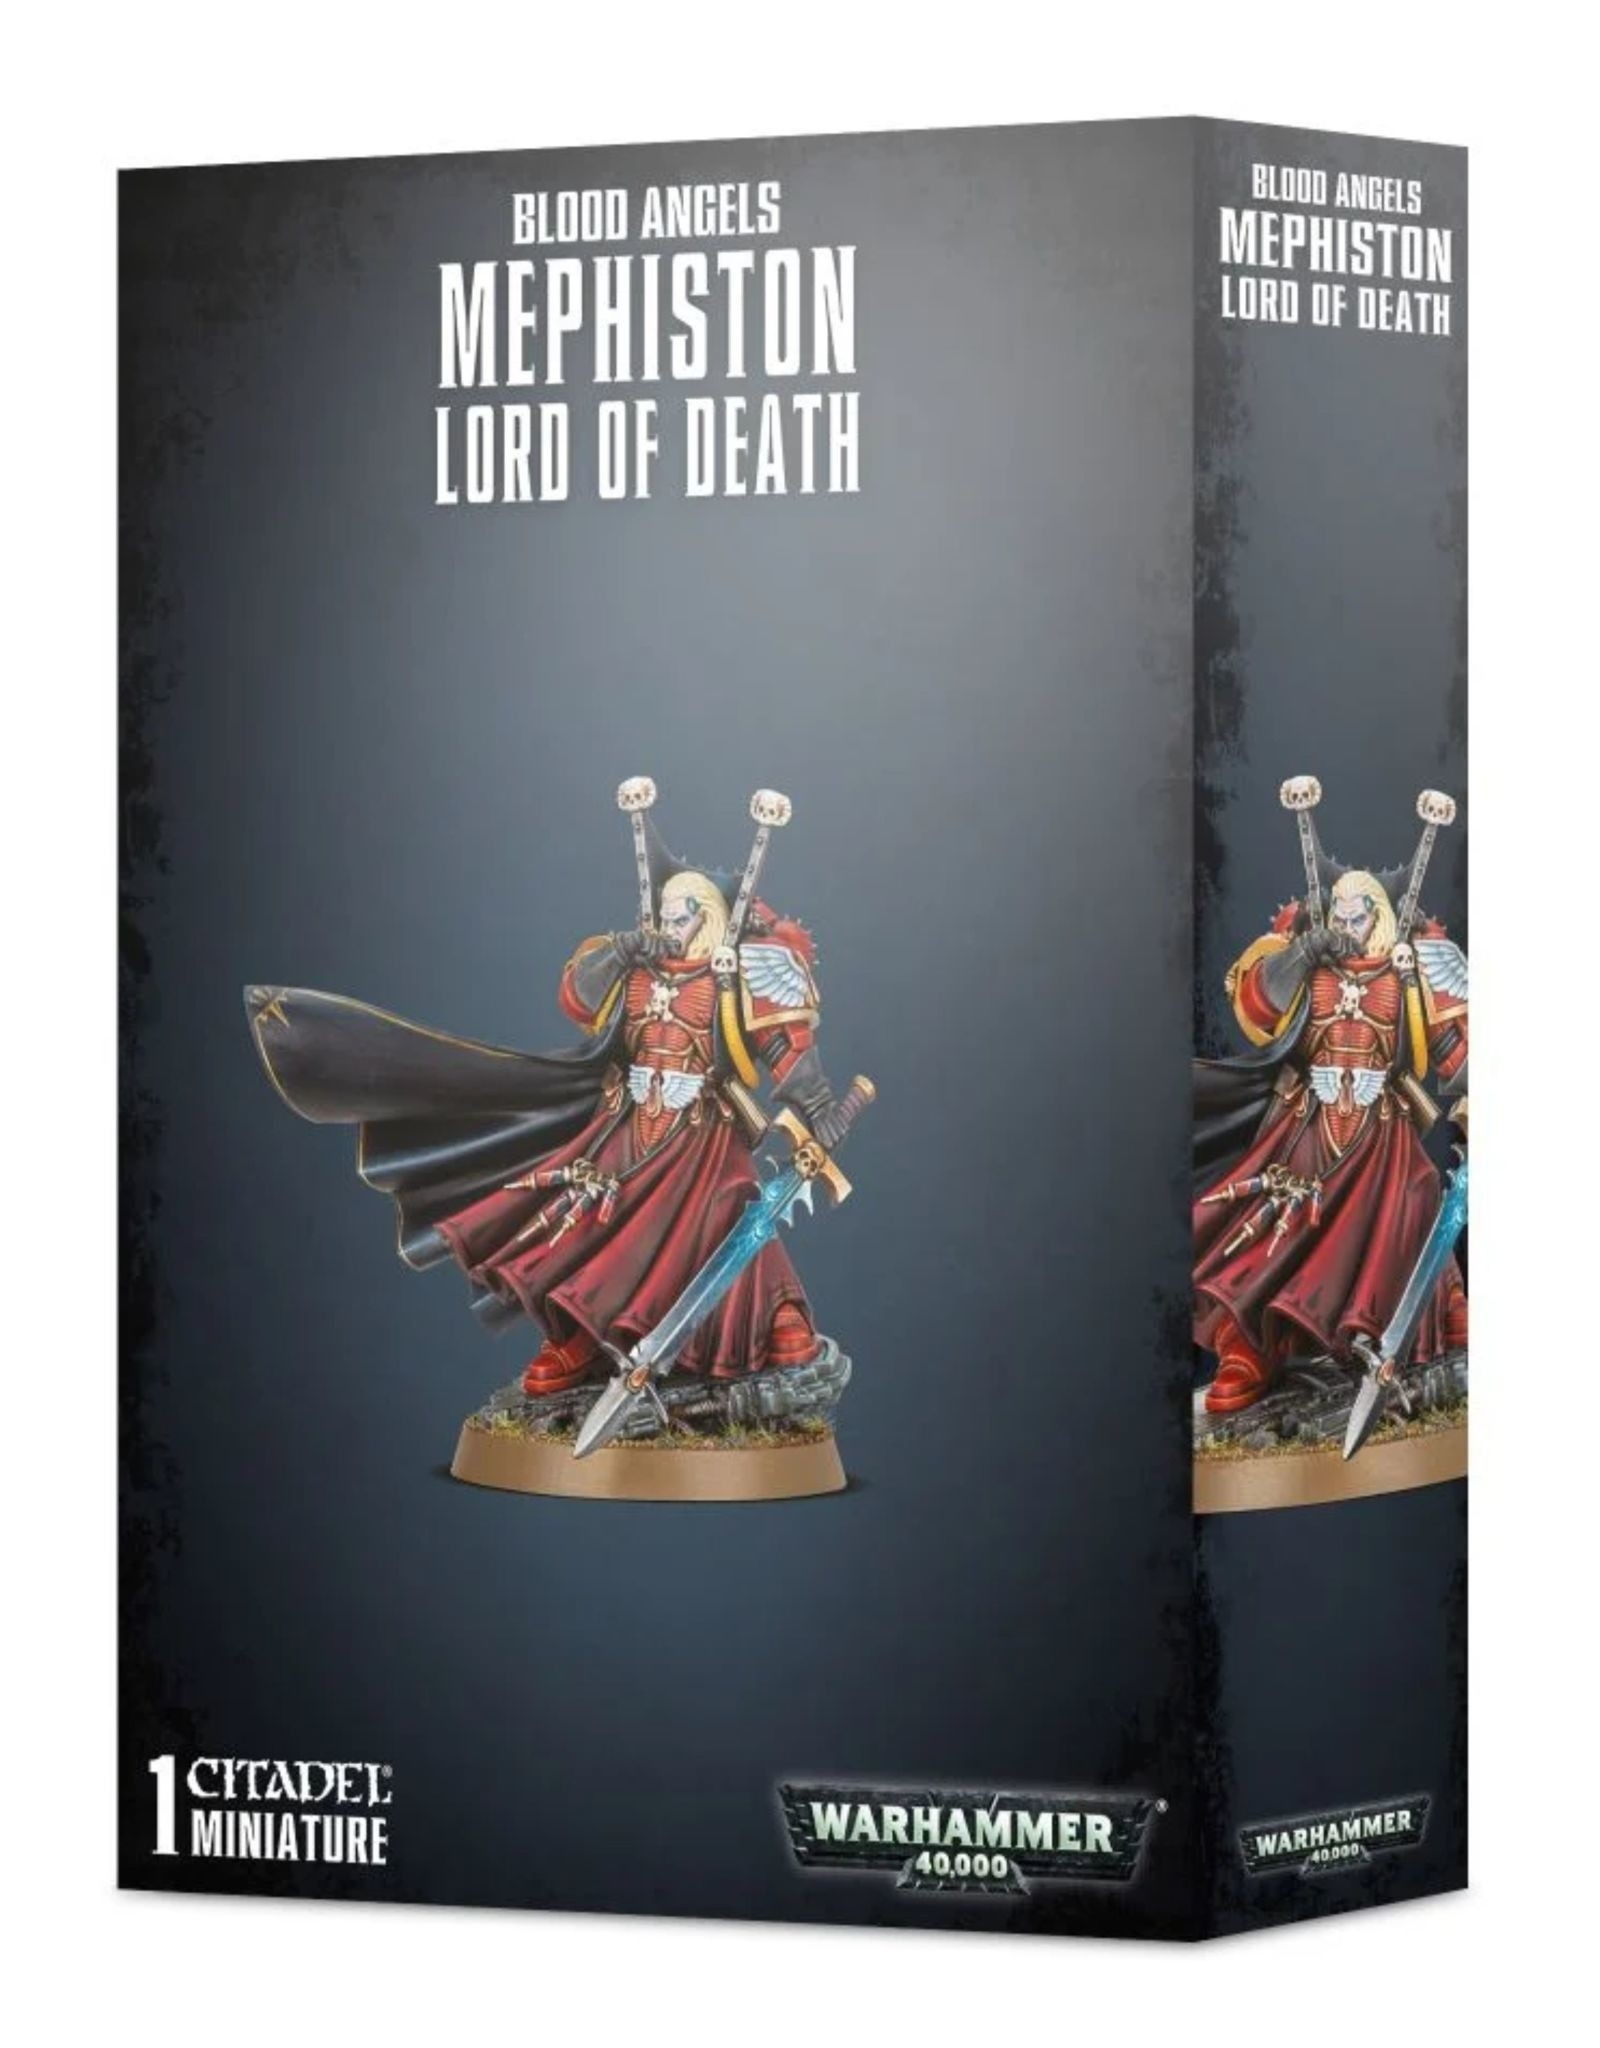 Warhammer 40k Blood Angels - Mephiston Lord of Death